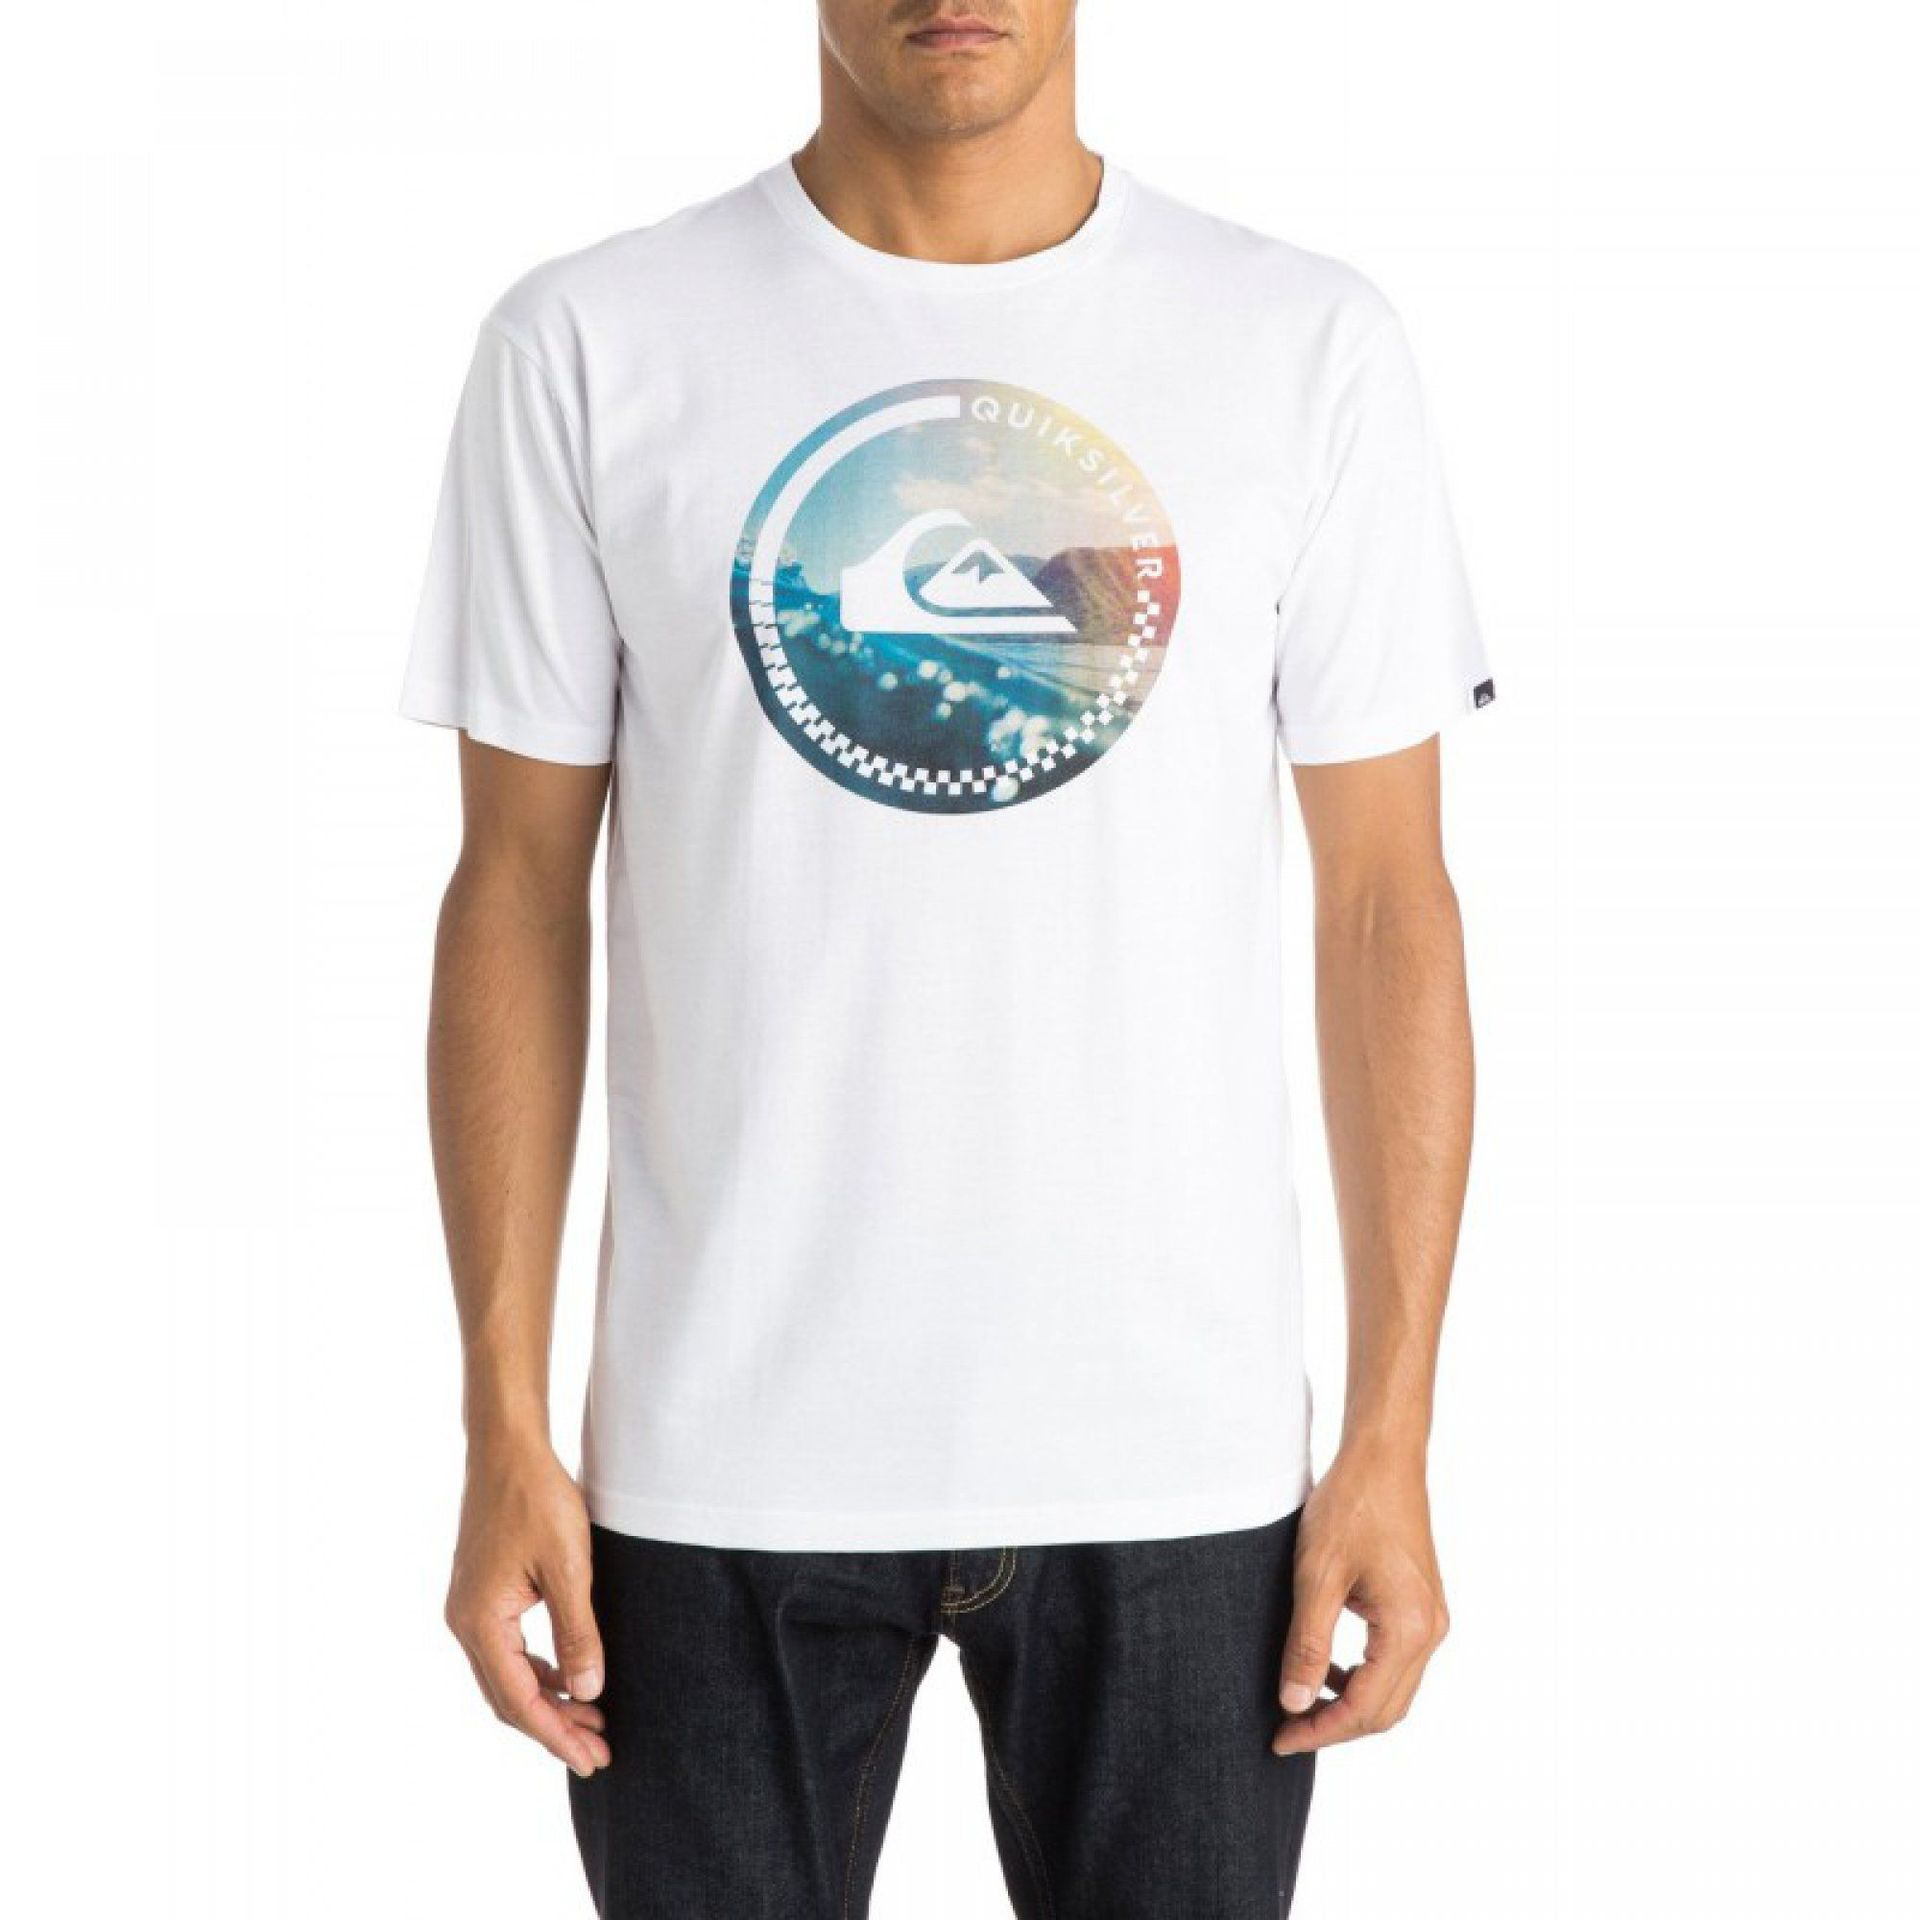 TSHIRT QUIKSILVER CLASSIC TEE MORE CORE WBB0